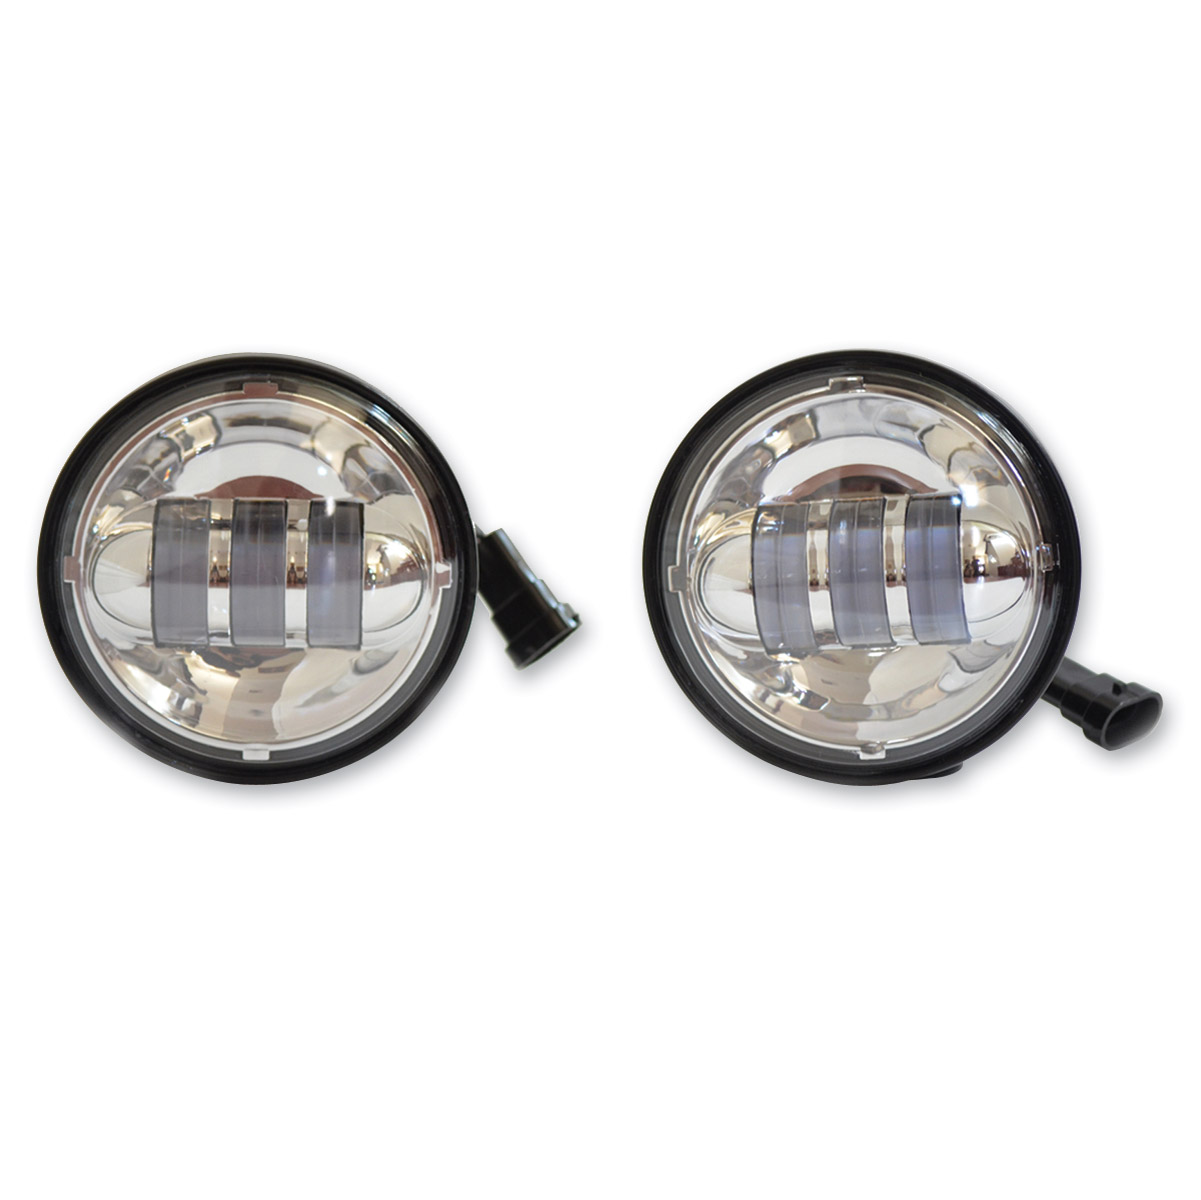 Light Pole Definition: PathfinderLED High Definition Chrome 4-1/2″ LED Passing